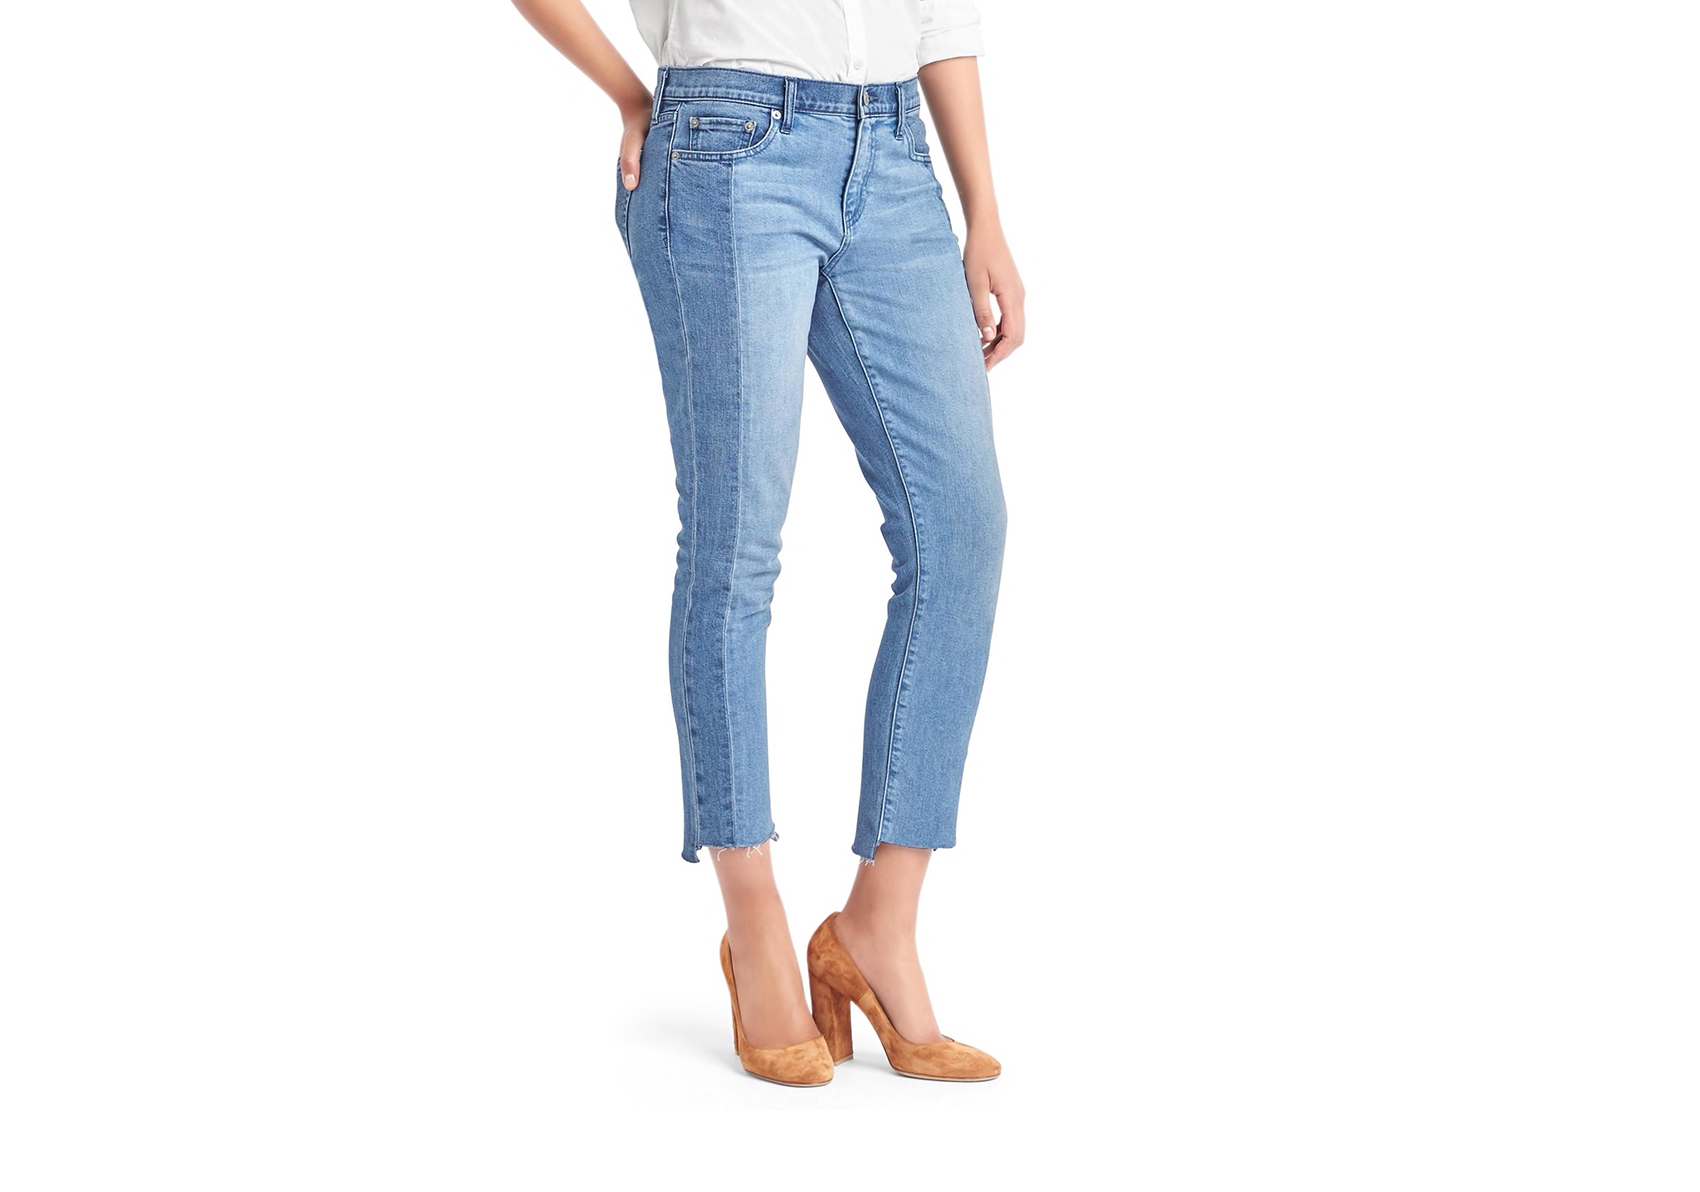 gap-two-tone-jeans